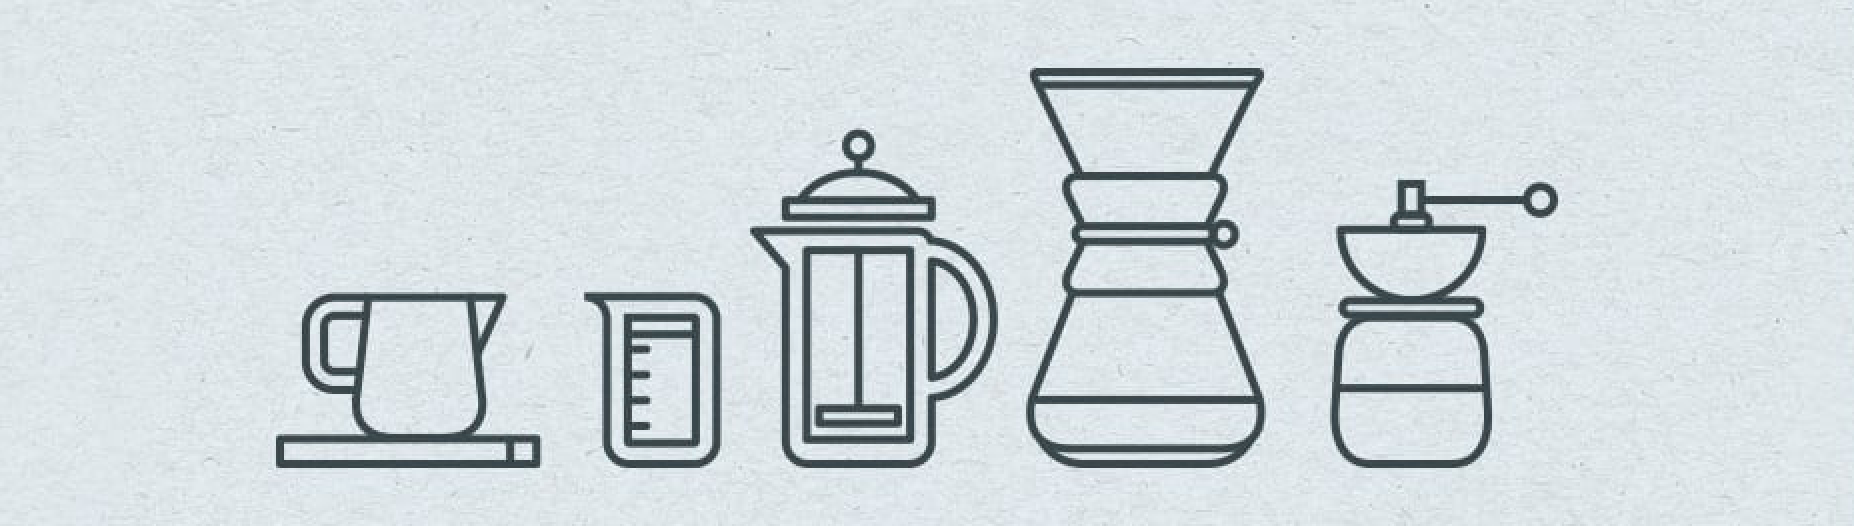 pro coffee brewing guide